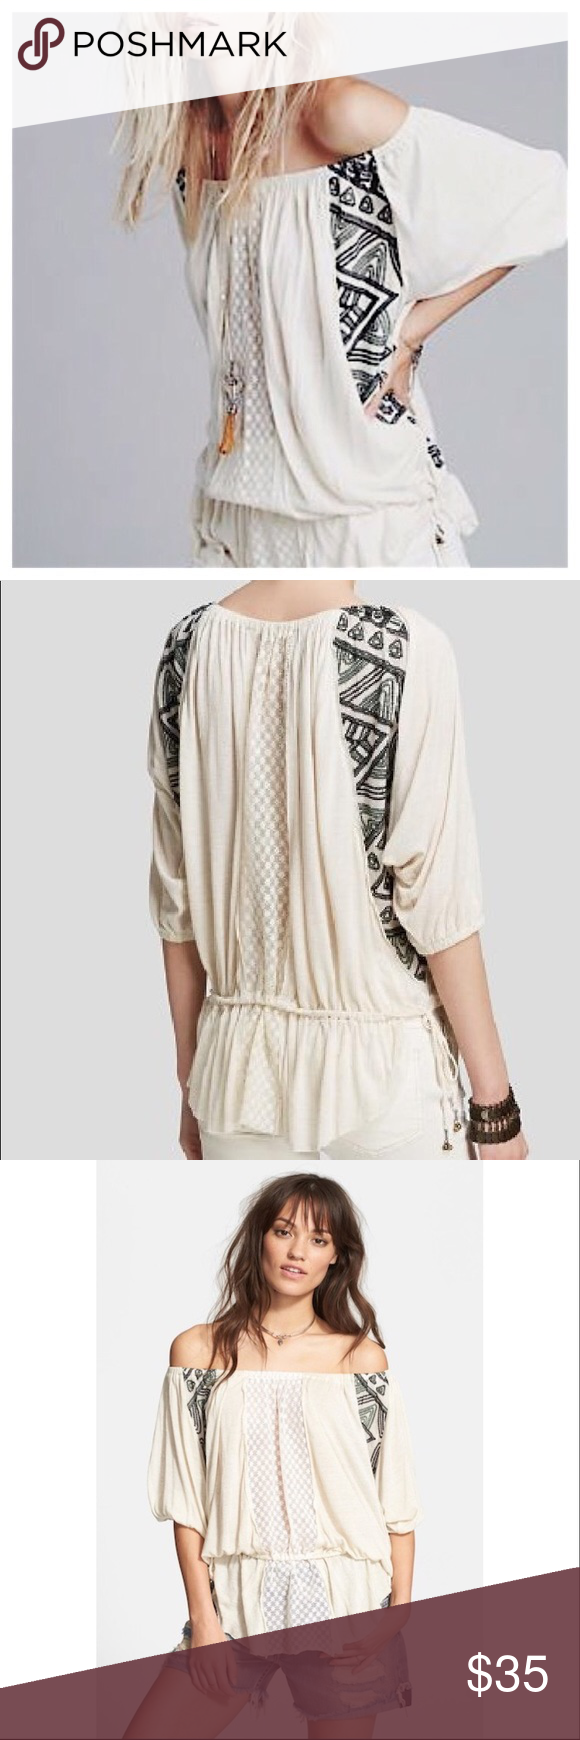 767eb68c47e Free People off-shoulder New World butterfly tunic Very cute, flowy Free  People tunic that gives off easygoing style vibes! Can be worn off the  shoulder or ...